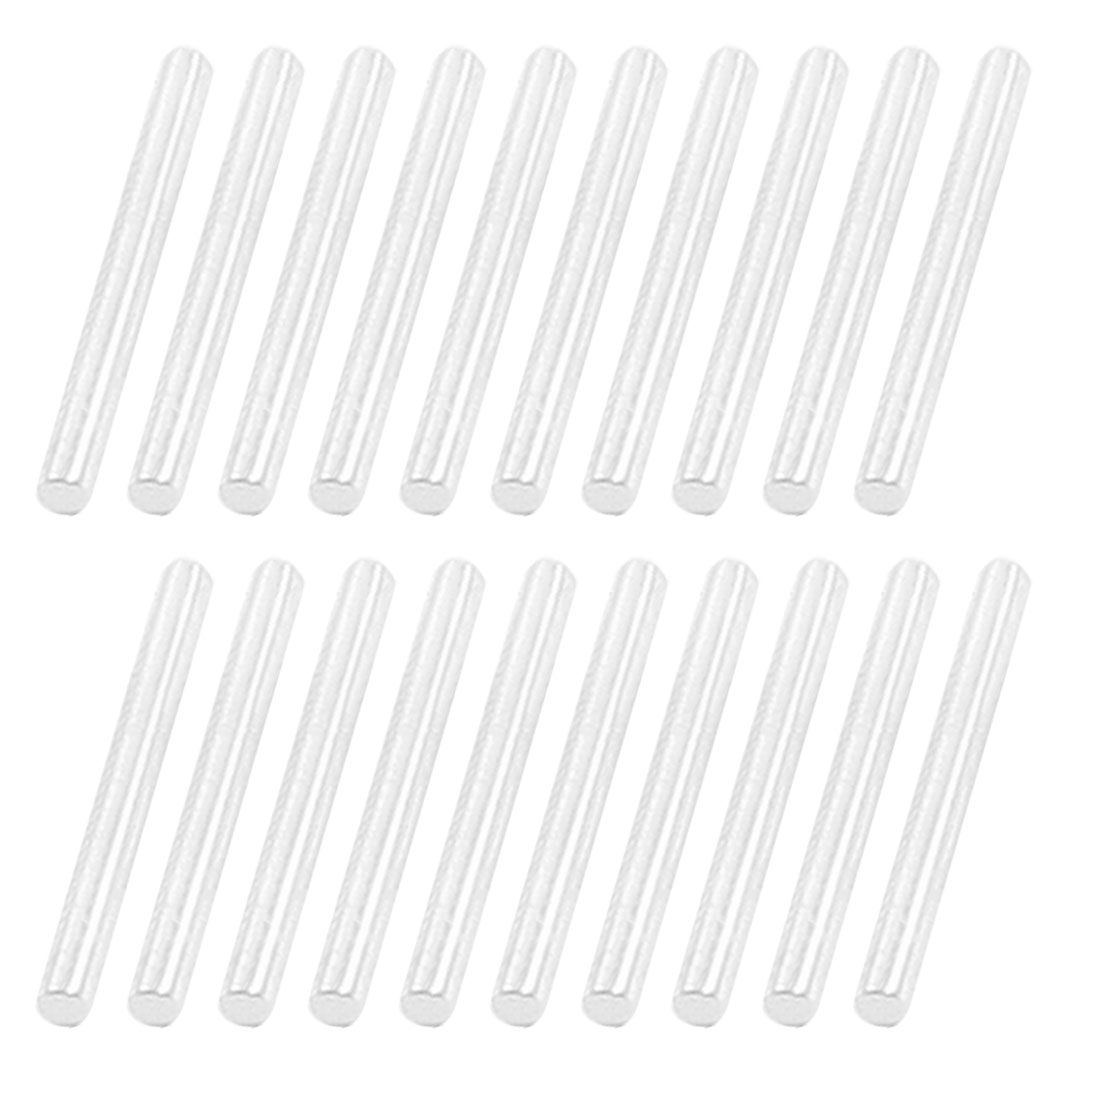 RC-Toy-Car-Part-Stainless-Steel-Round-Rods-Bars-Axles-14mm-x-2mm-20-Pcs